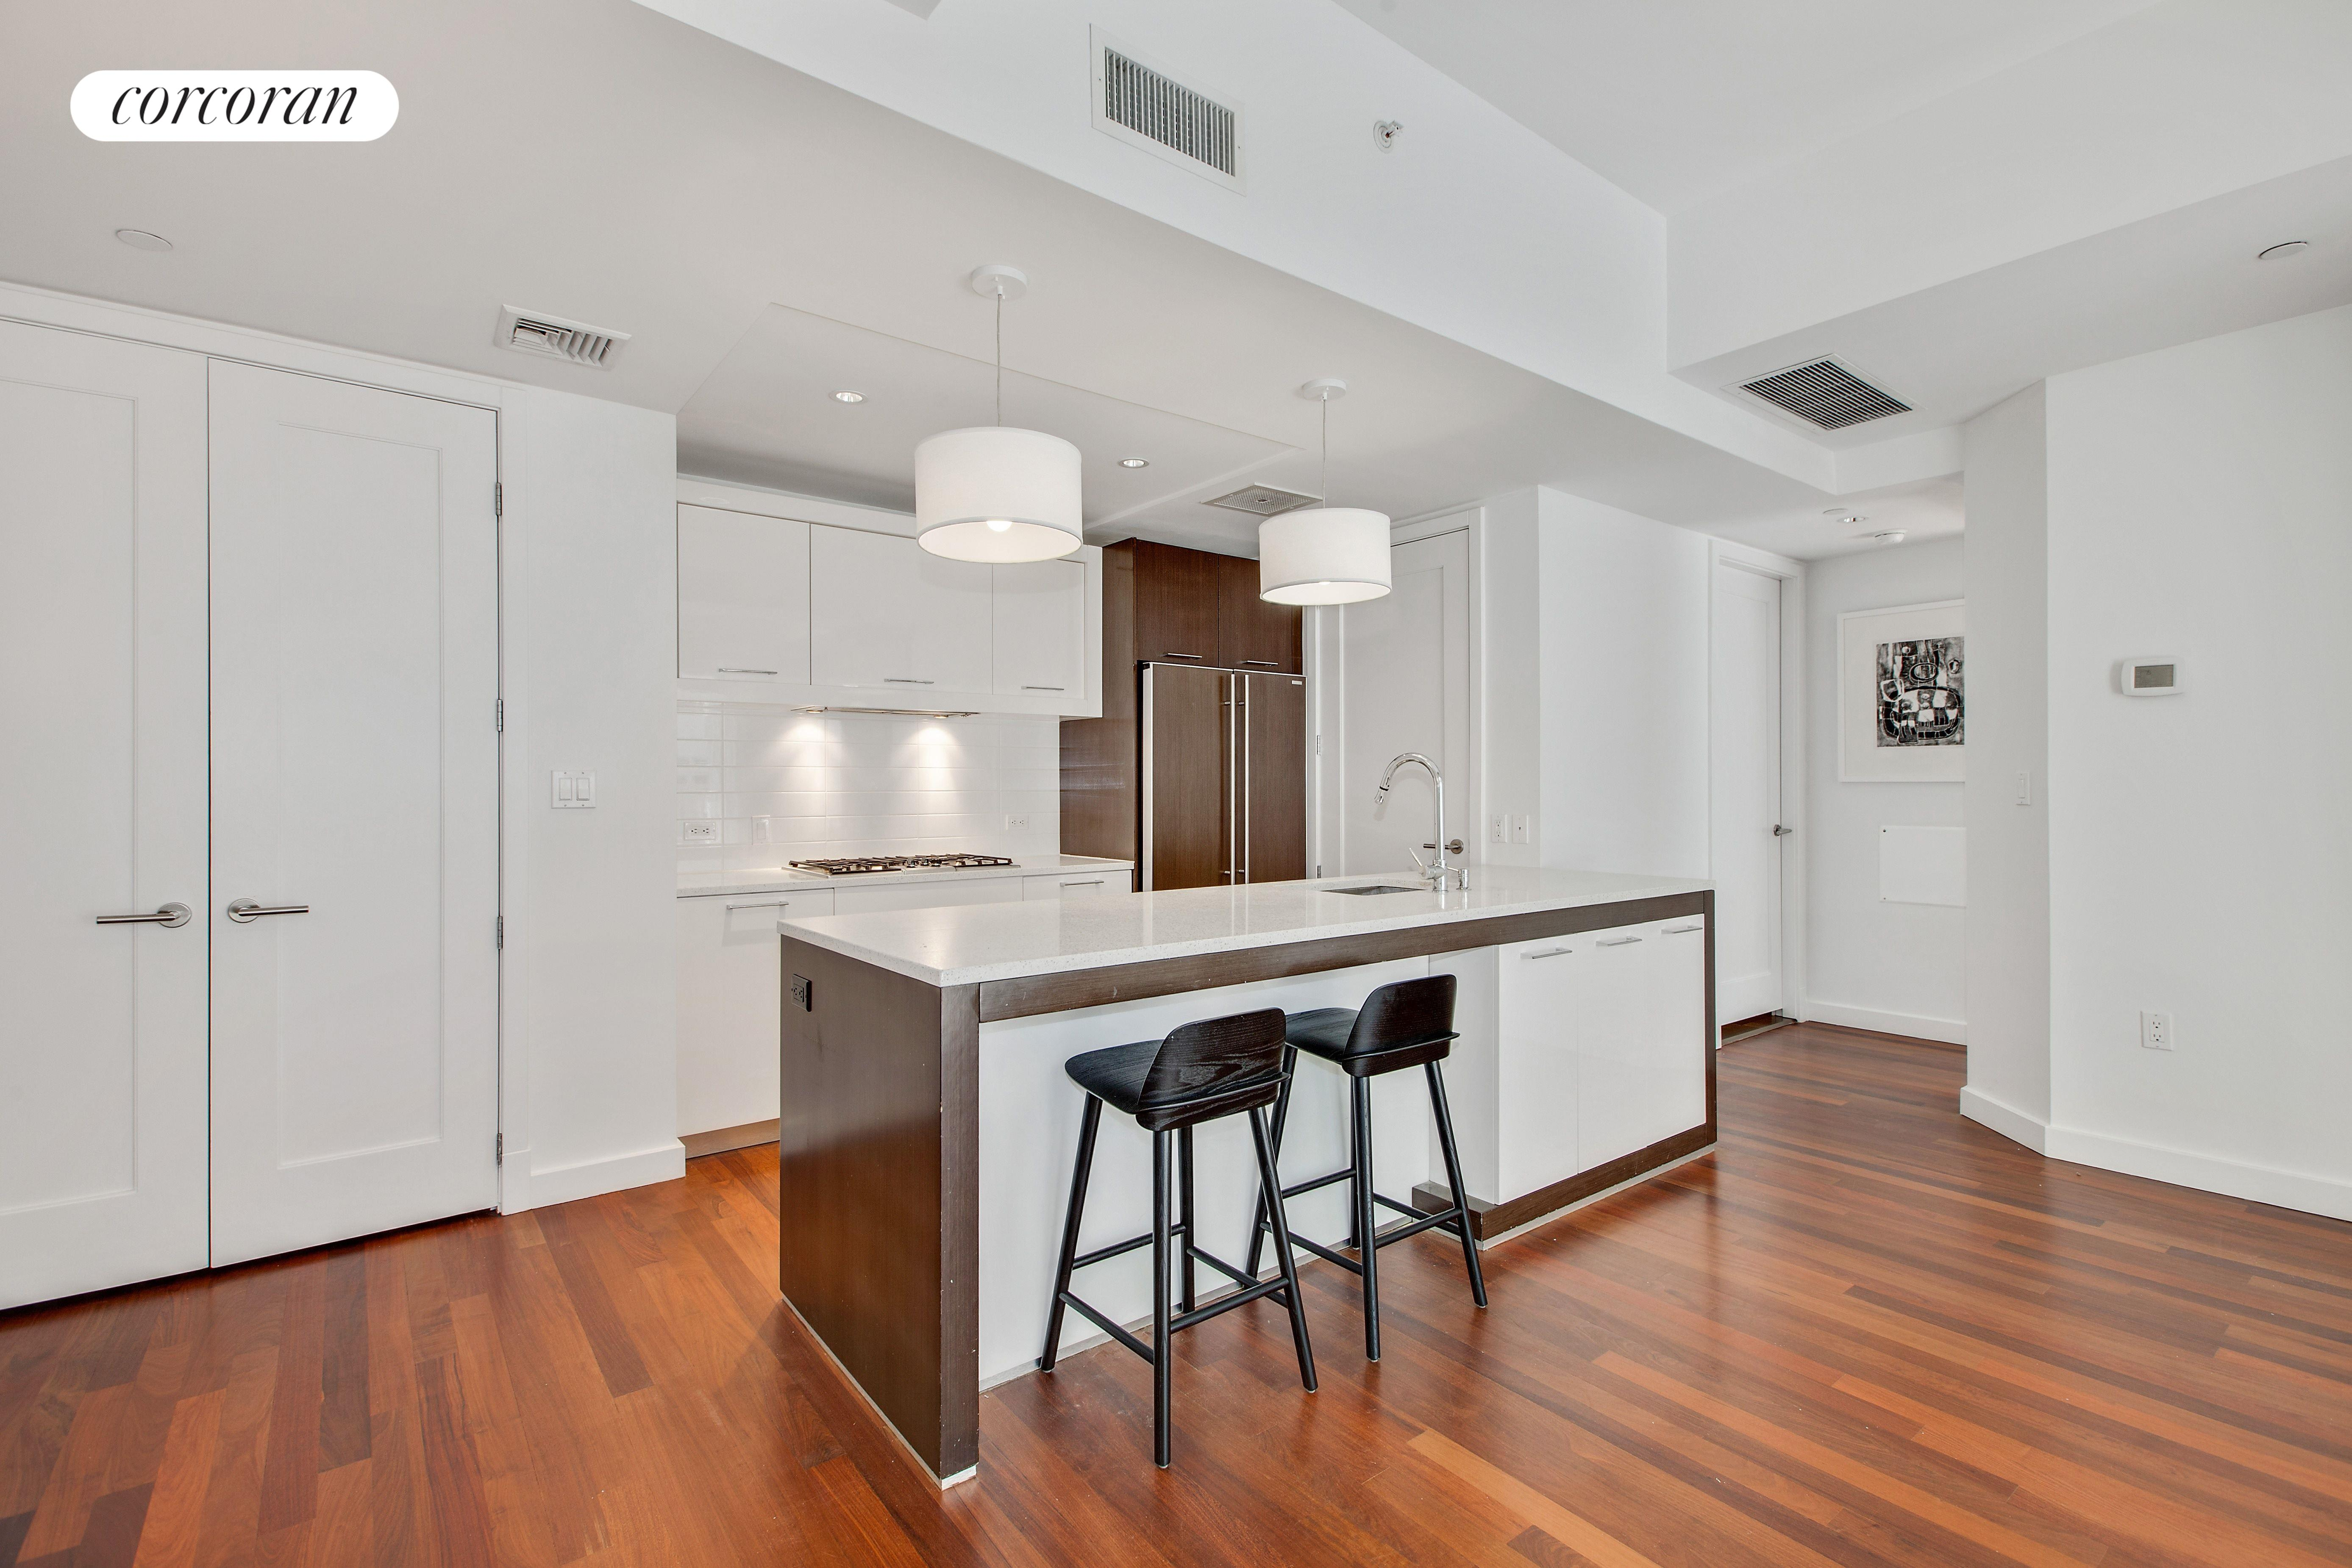 125 North 10th Street, NGD, Large Living Room with High Ceilings